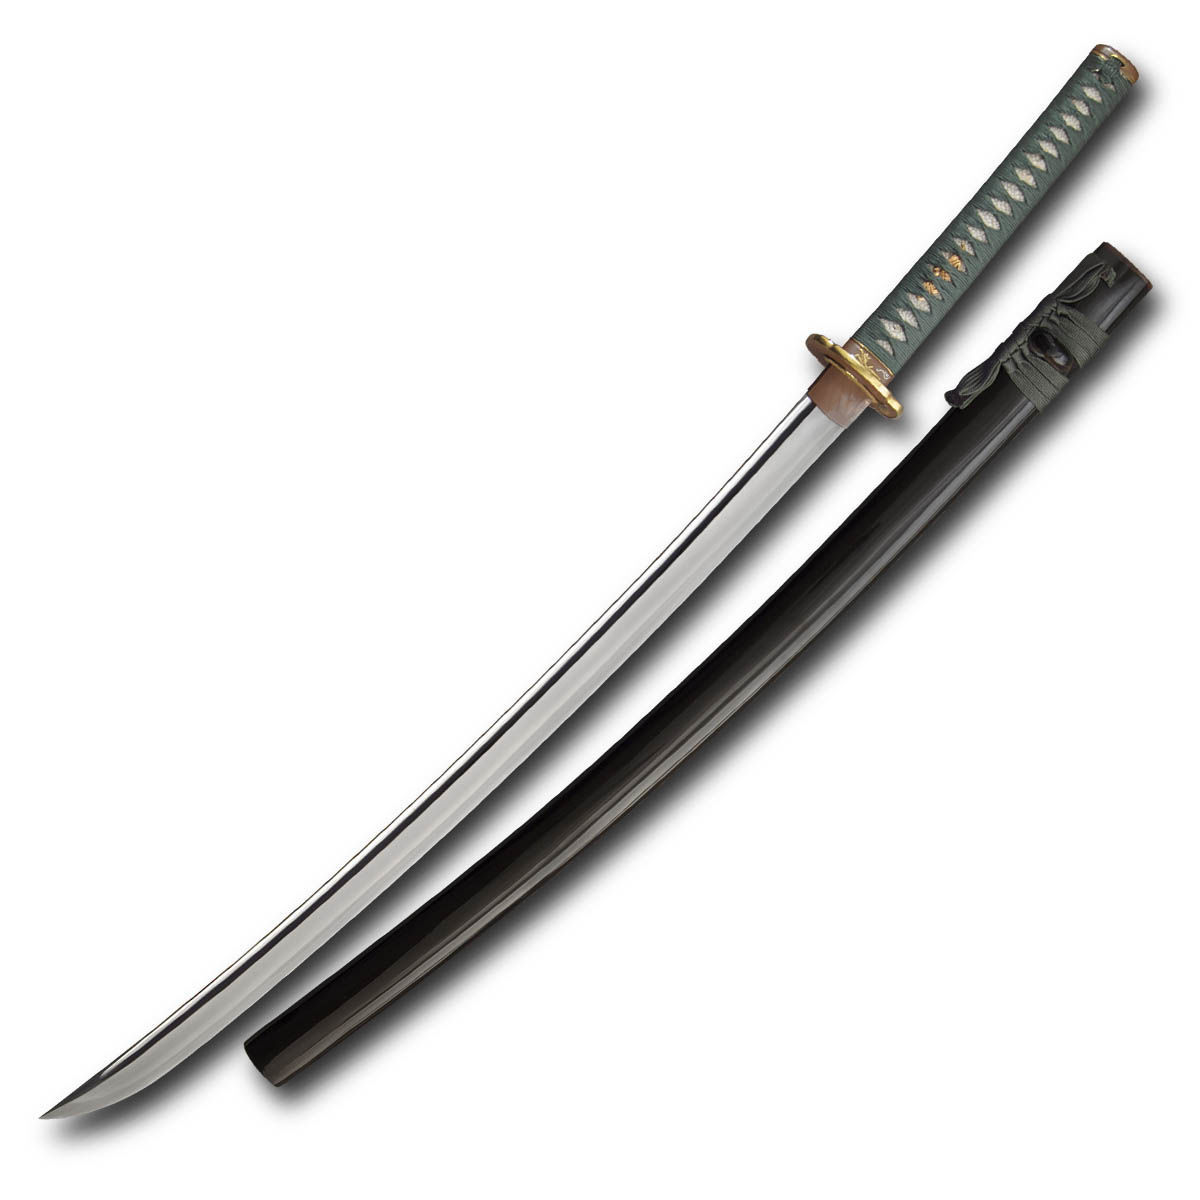 Praying Mantis Katana by Paul Chen / Hanwei with L6/Bainite blade steel blade and brown lacquered saya